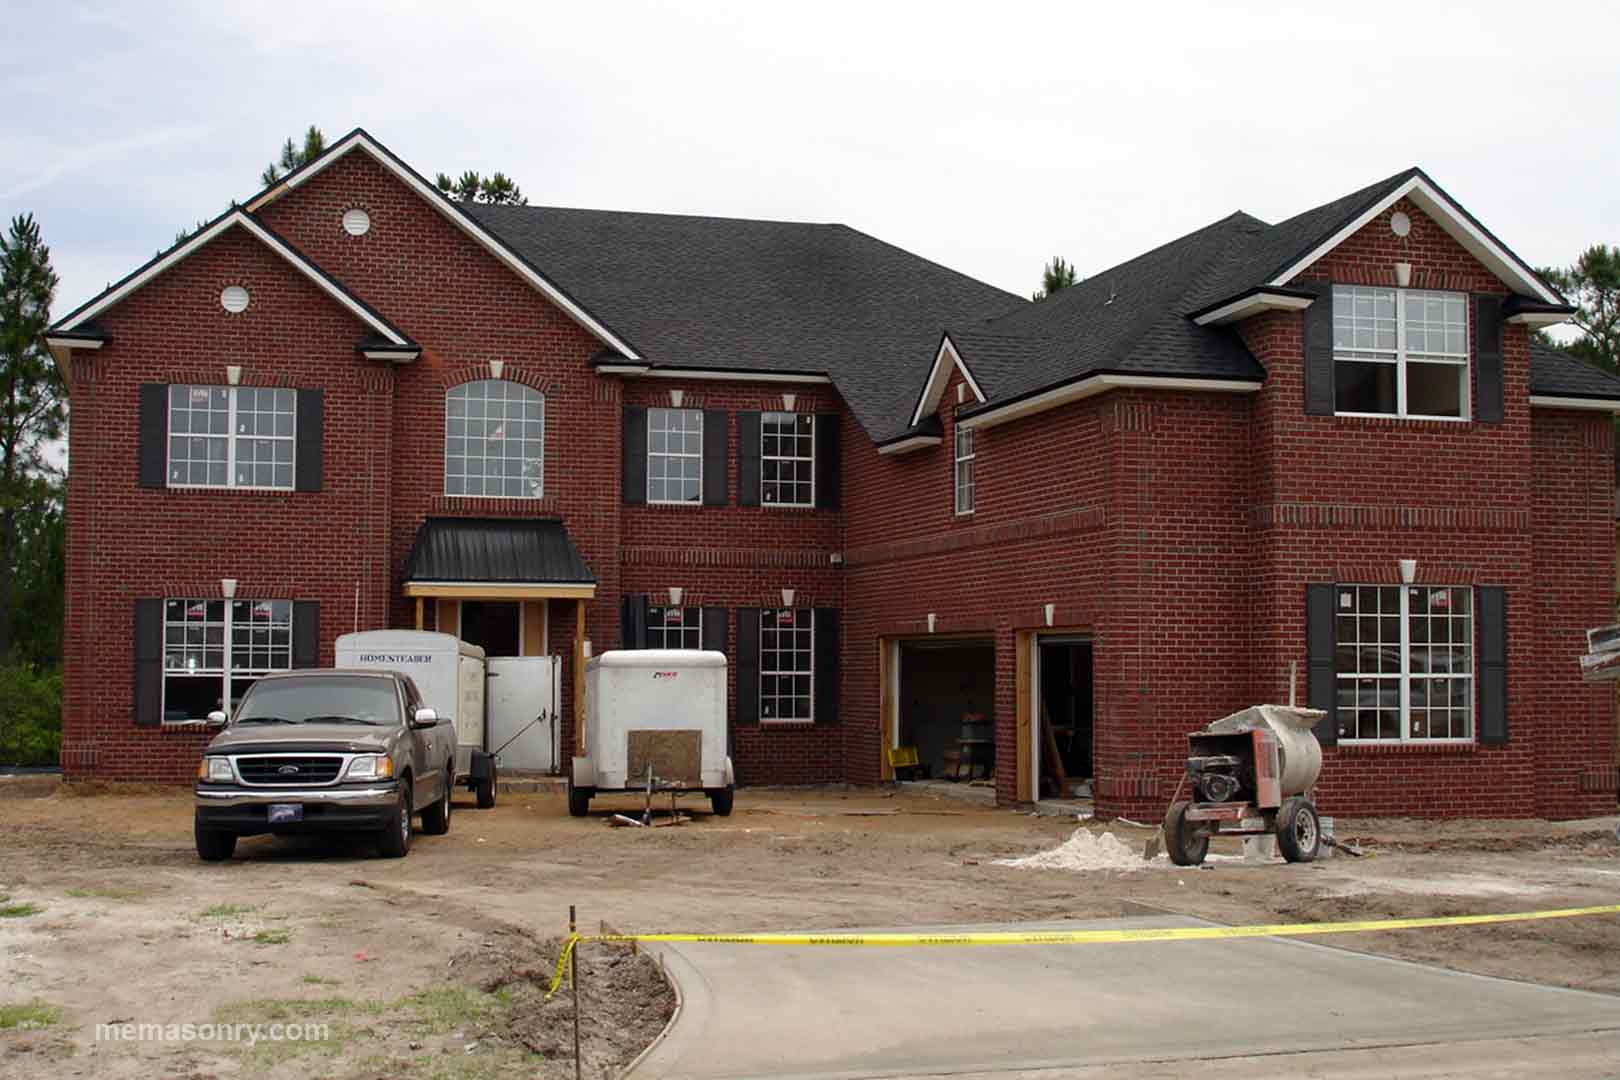 brick house built by M&E Masonry & Sons, Inc.